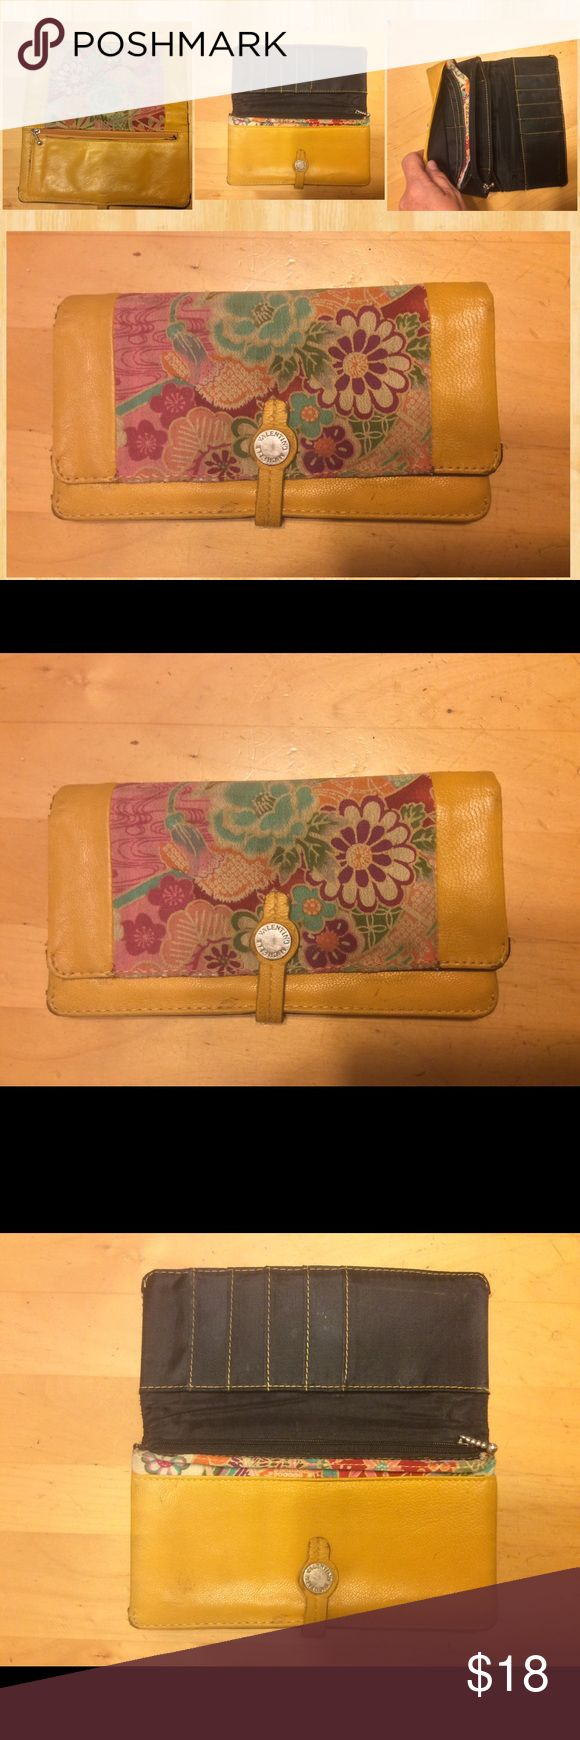 Michelle Valentino Wallet Mustard Yellow, slight use, very clean, zippers all good. Michelle Valentino Bags Wallets